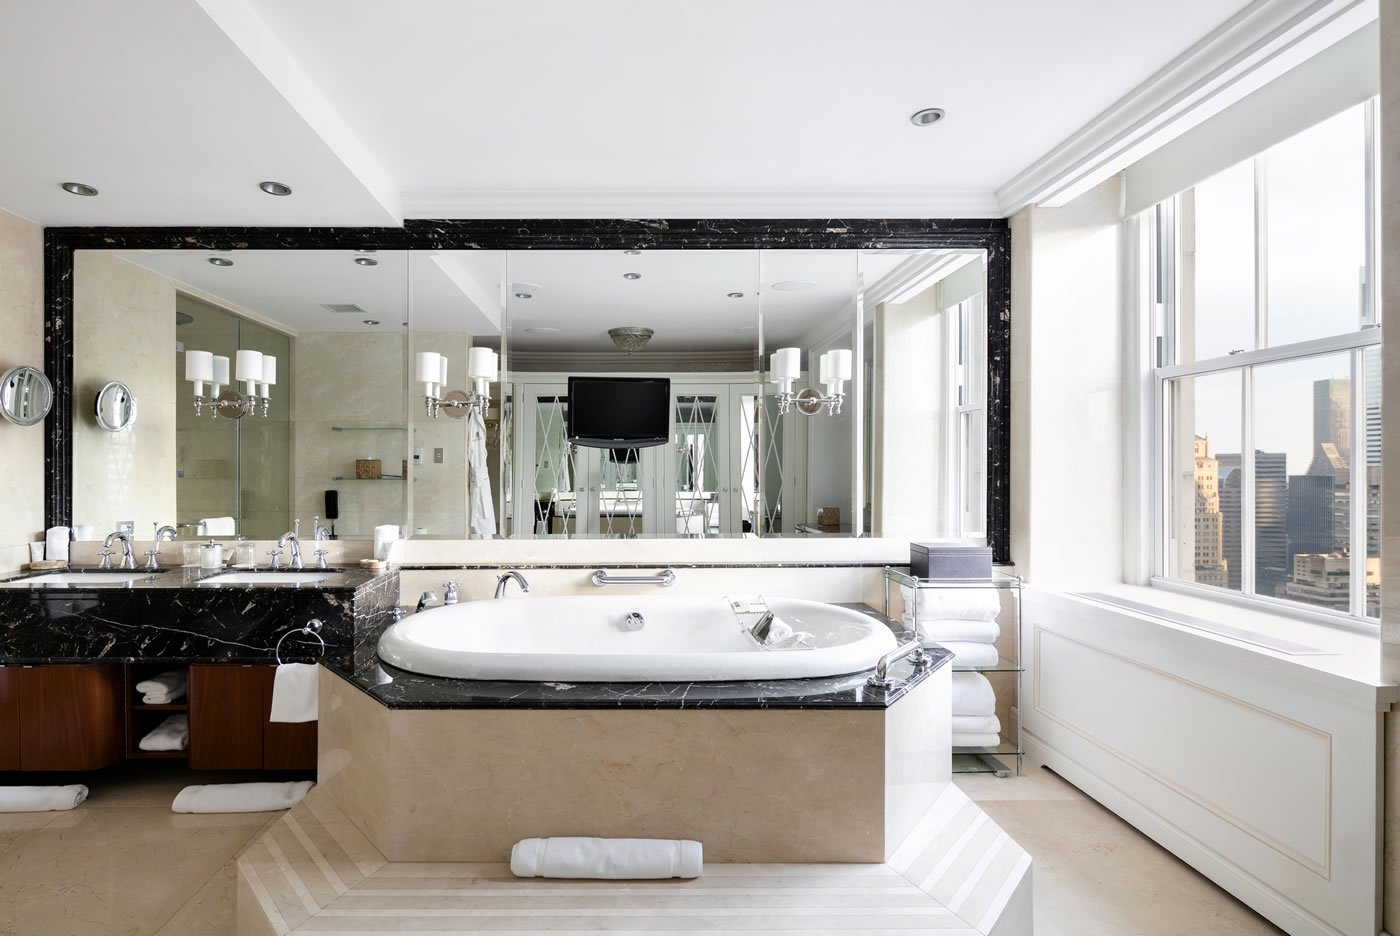 In A Mood To Splurge Here Are The 7 Most Decadent Suites: luxury master bathroom suites